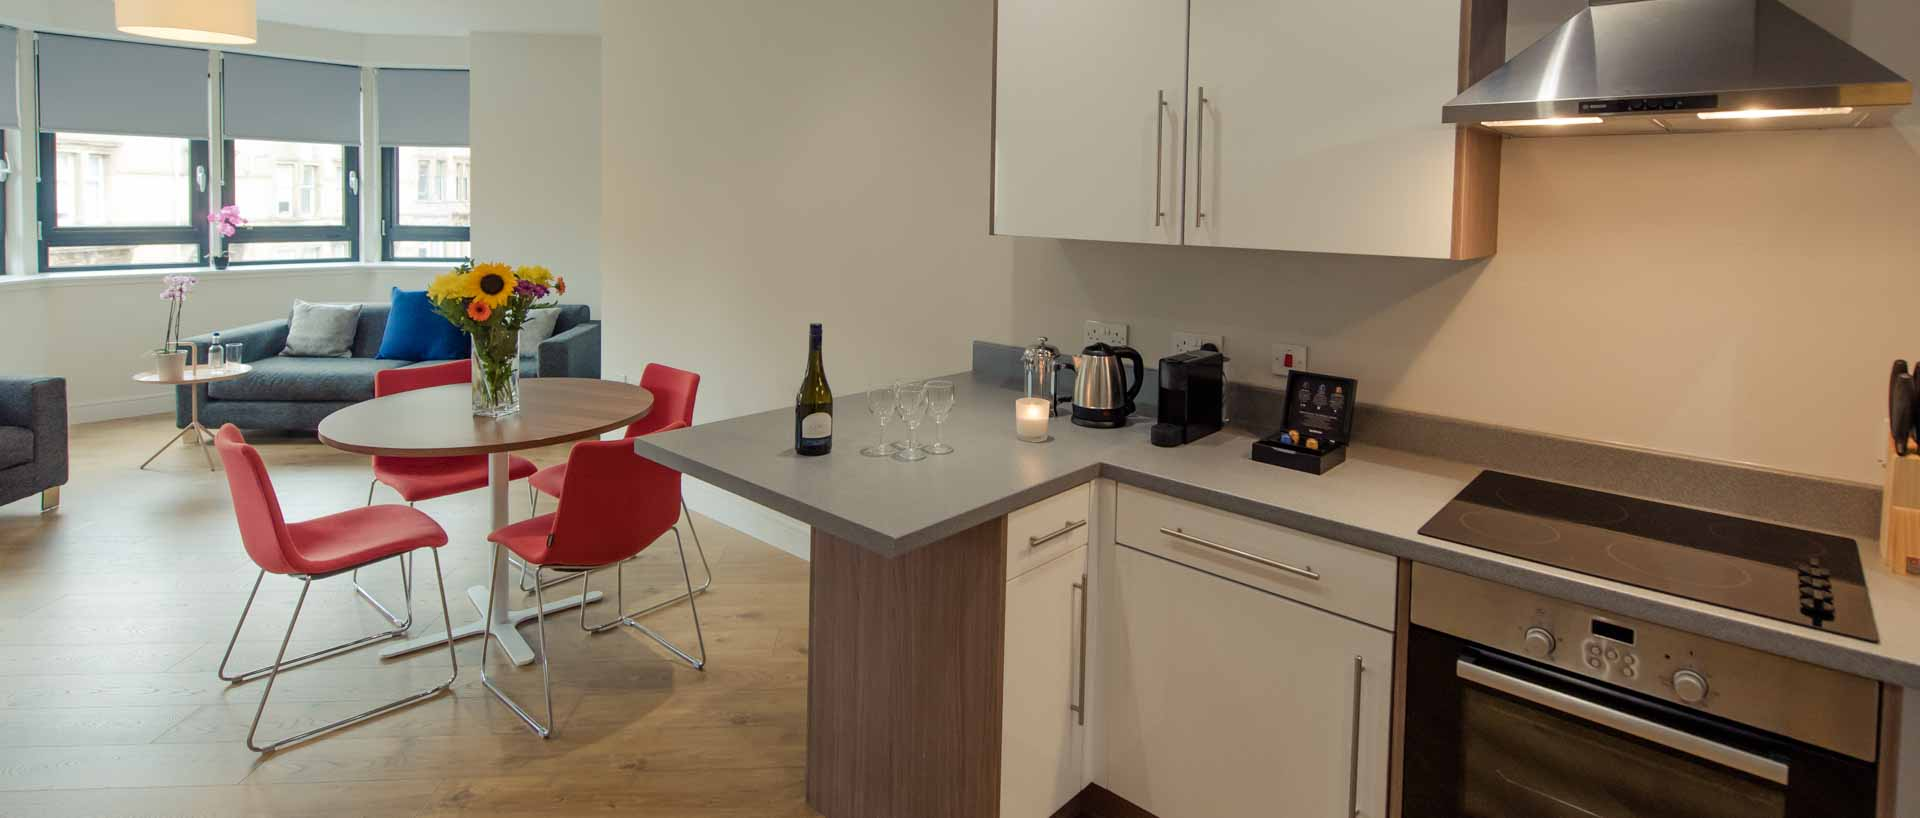 PREMIER SUITES PLUS Glasgow Bath Street fully equipped kitchen